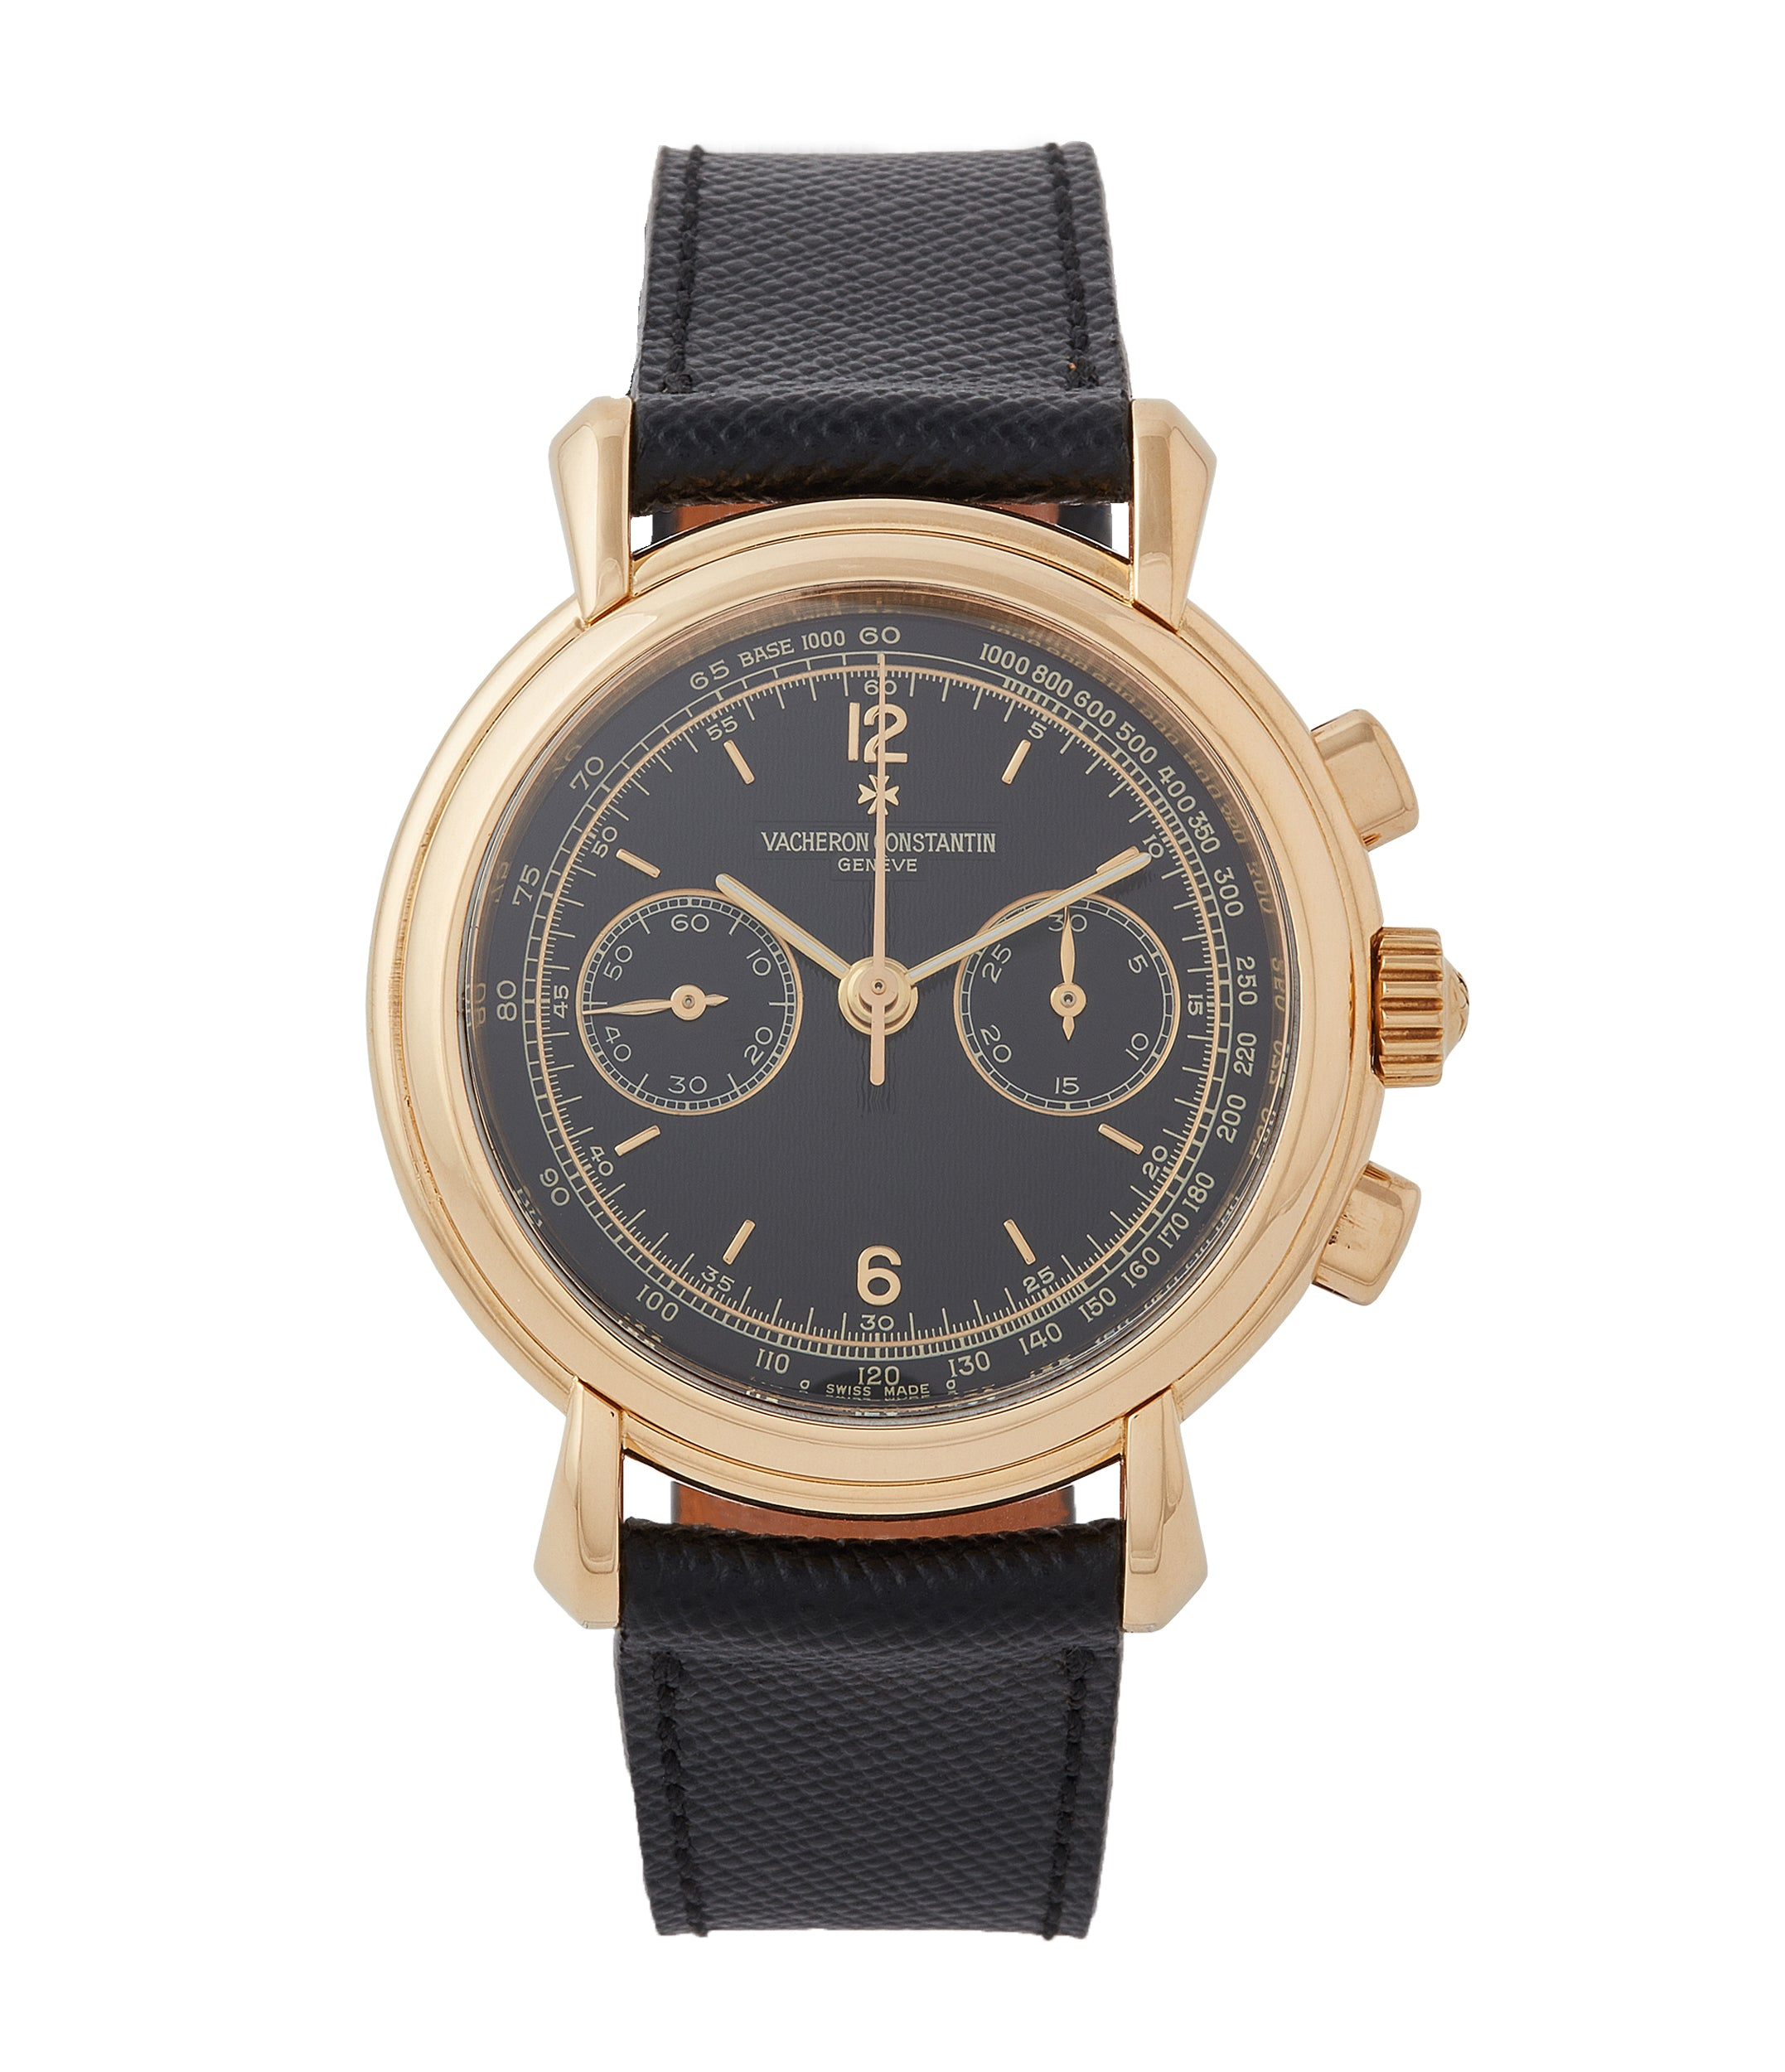 buy Vacheron Constantin Les Historiques Chronograph 47101/4 yellow gold black dial pre-owned manual-winding watch for sale online at A Collected Man London UK specialist of rare watches